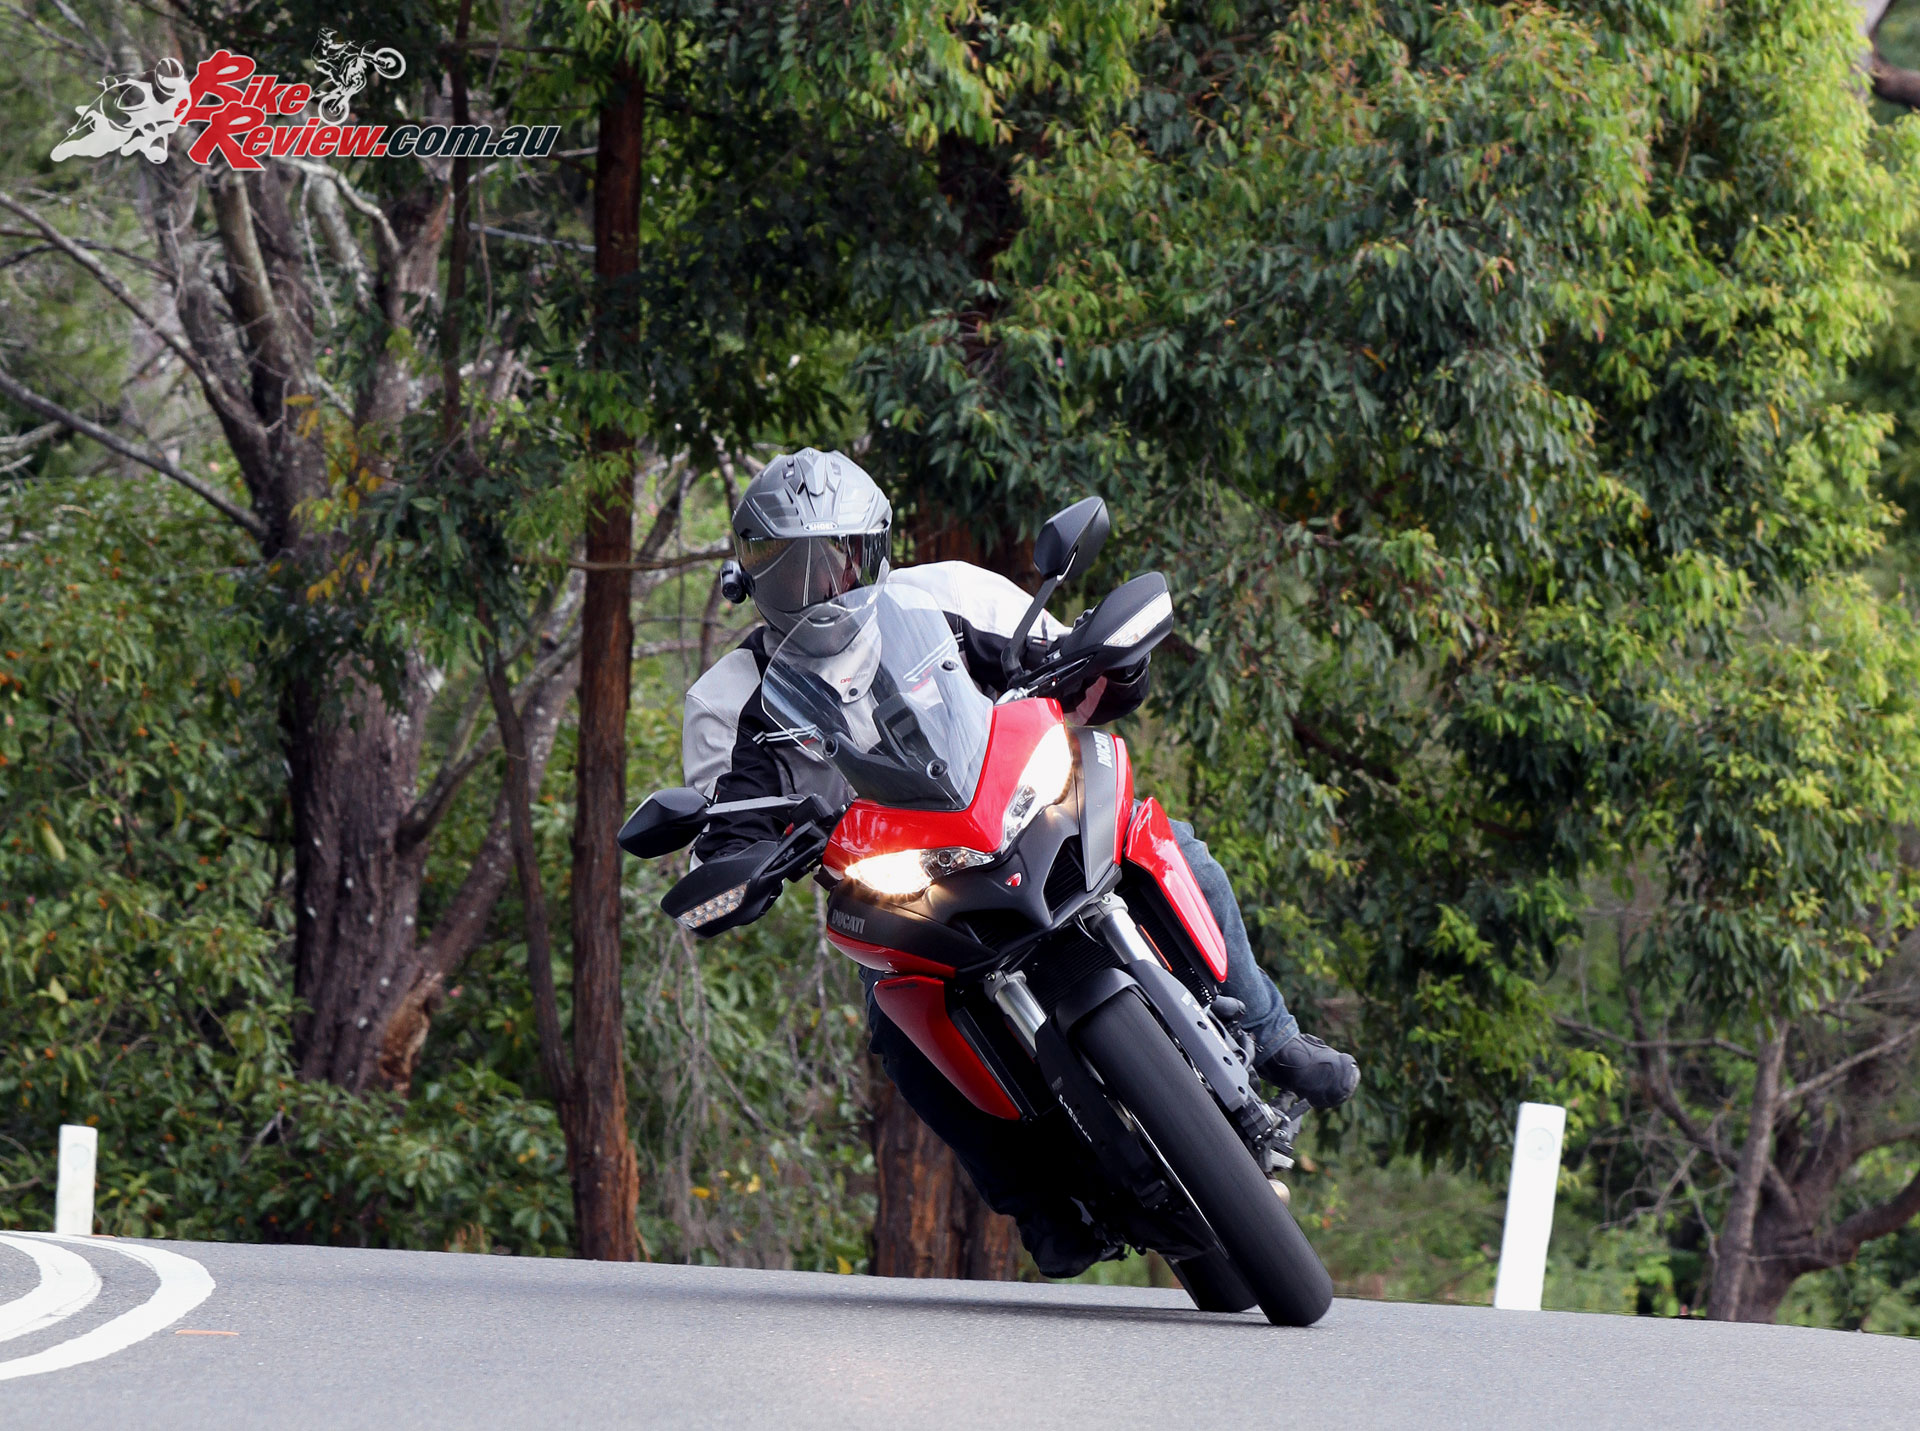 Harley manages to fit all the complex electronics and emissions gear - Wheels Are Complex Cross Spoked Cast Alloy Items On The Multistrada 950 The Swingarm Is A Dual Sided Item